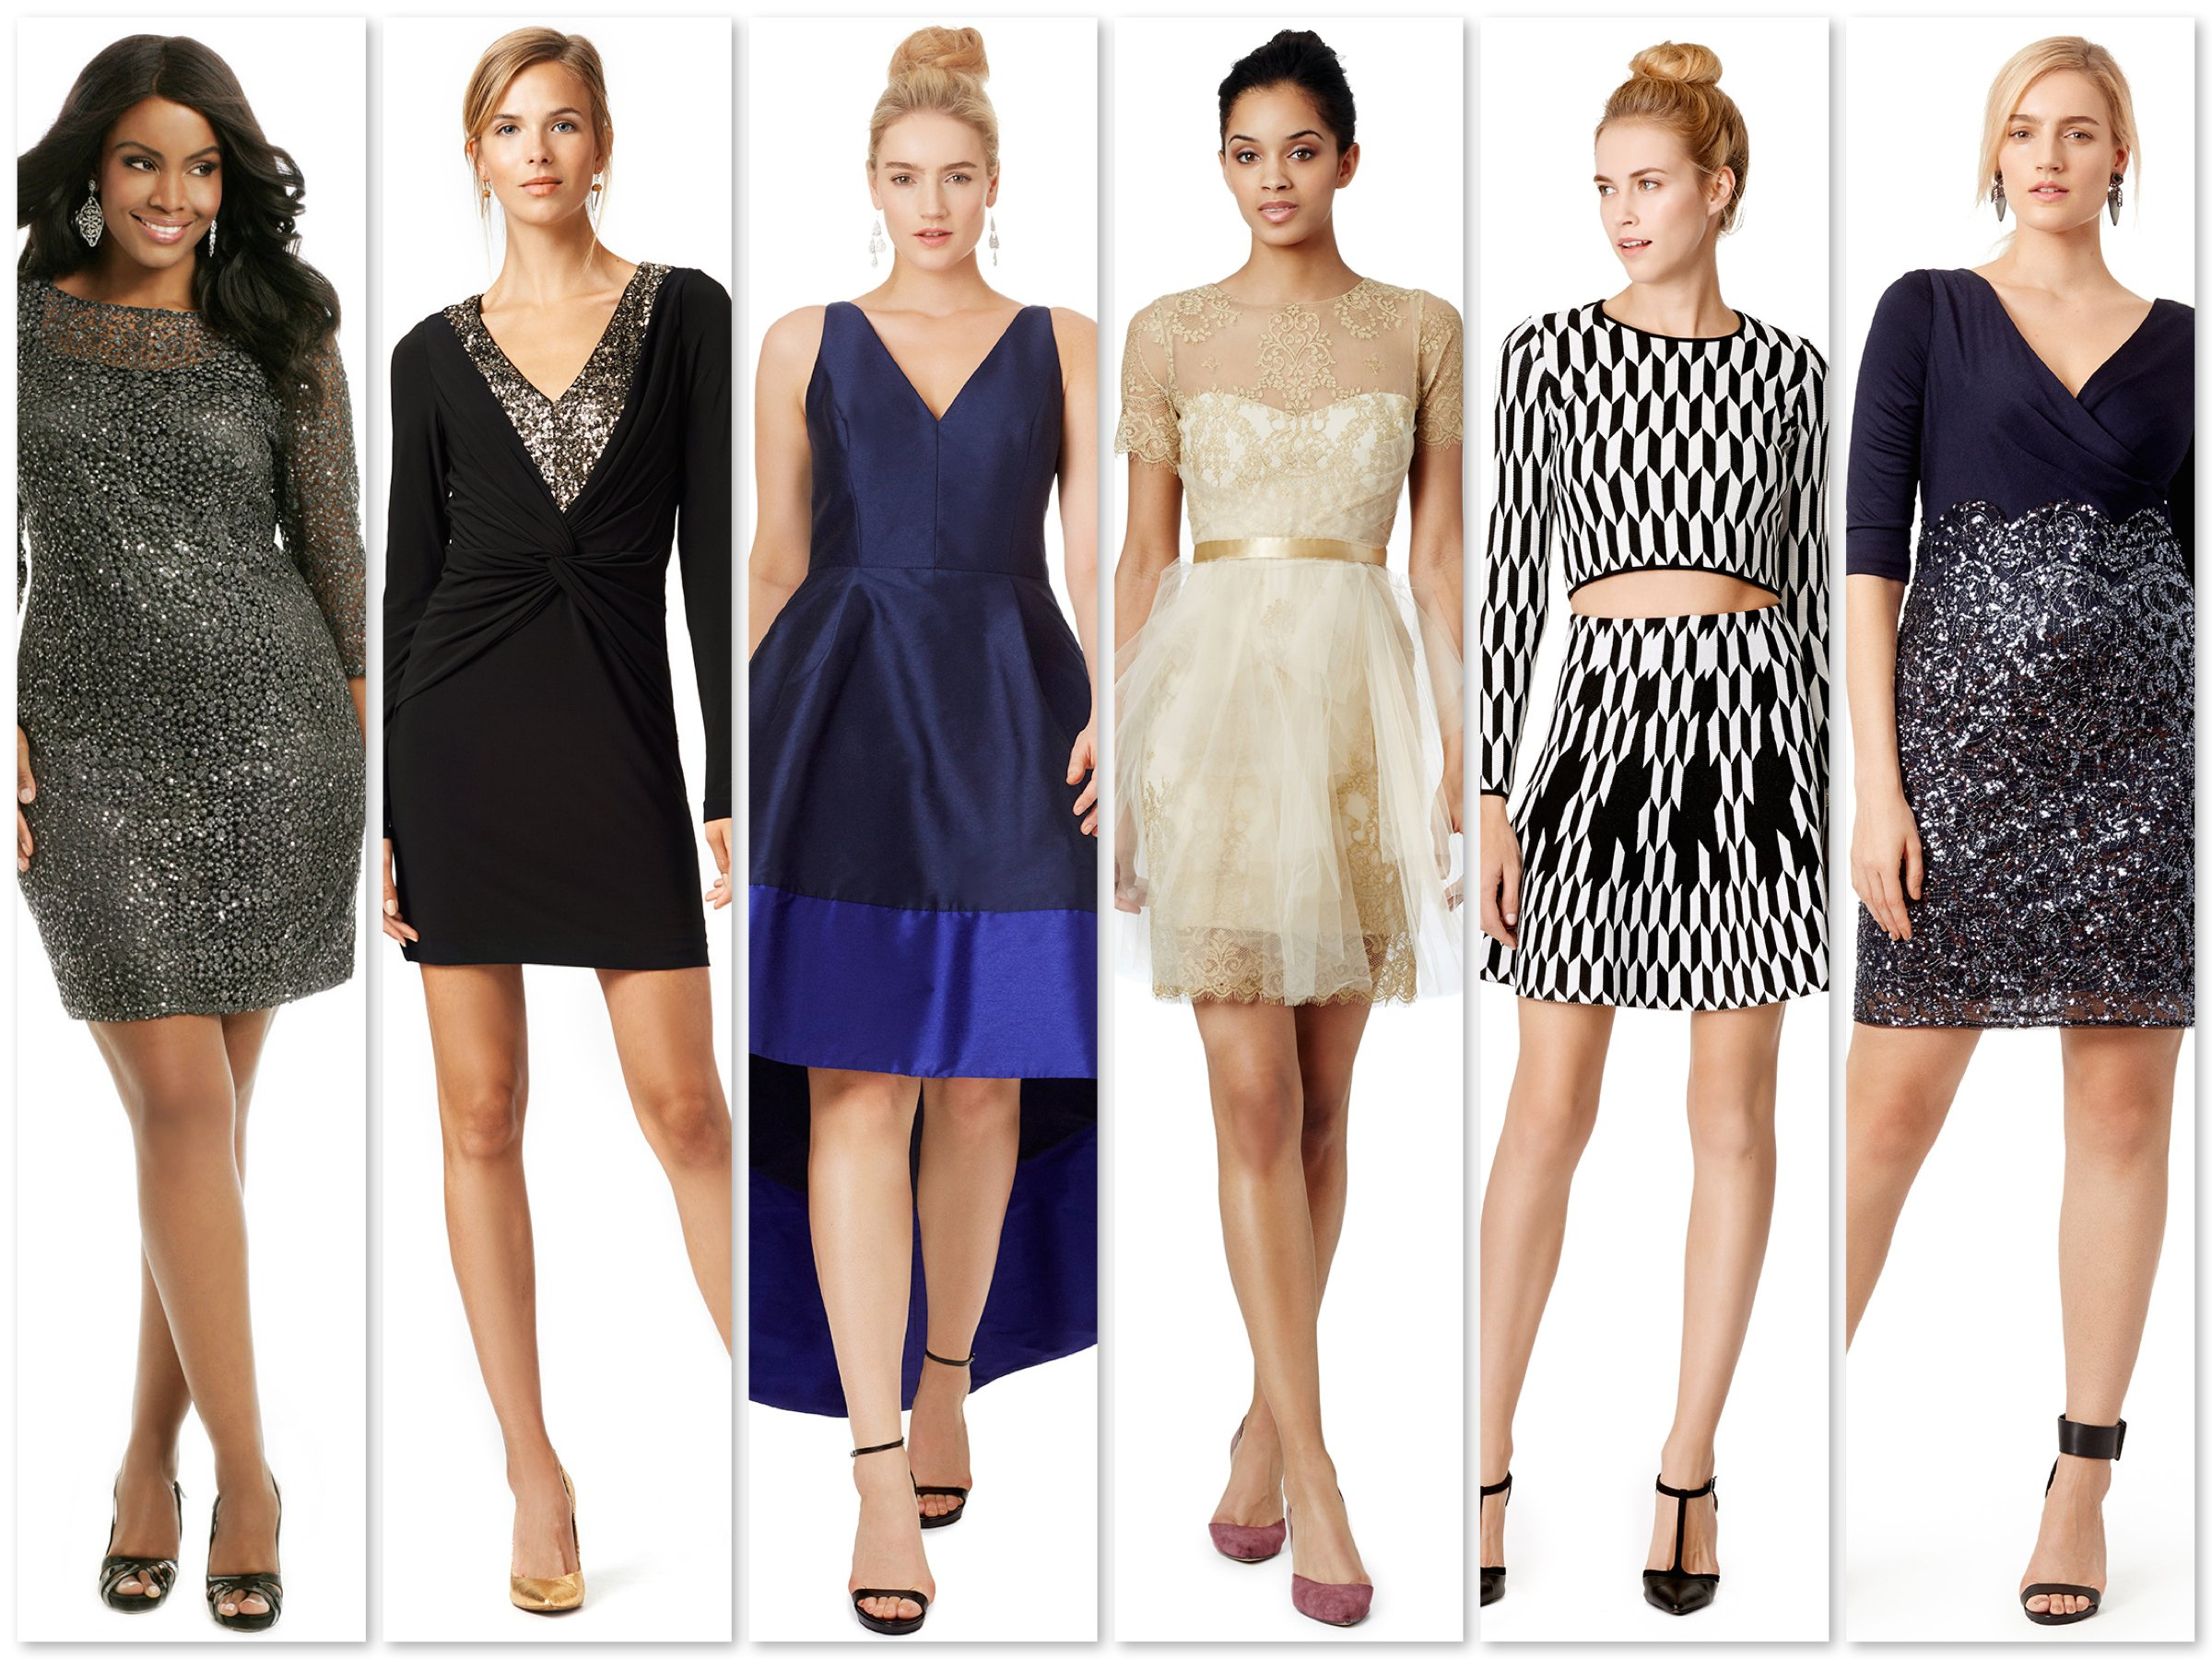 Rent the Runway for New Years Eve & Party Pretty